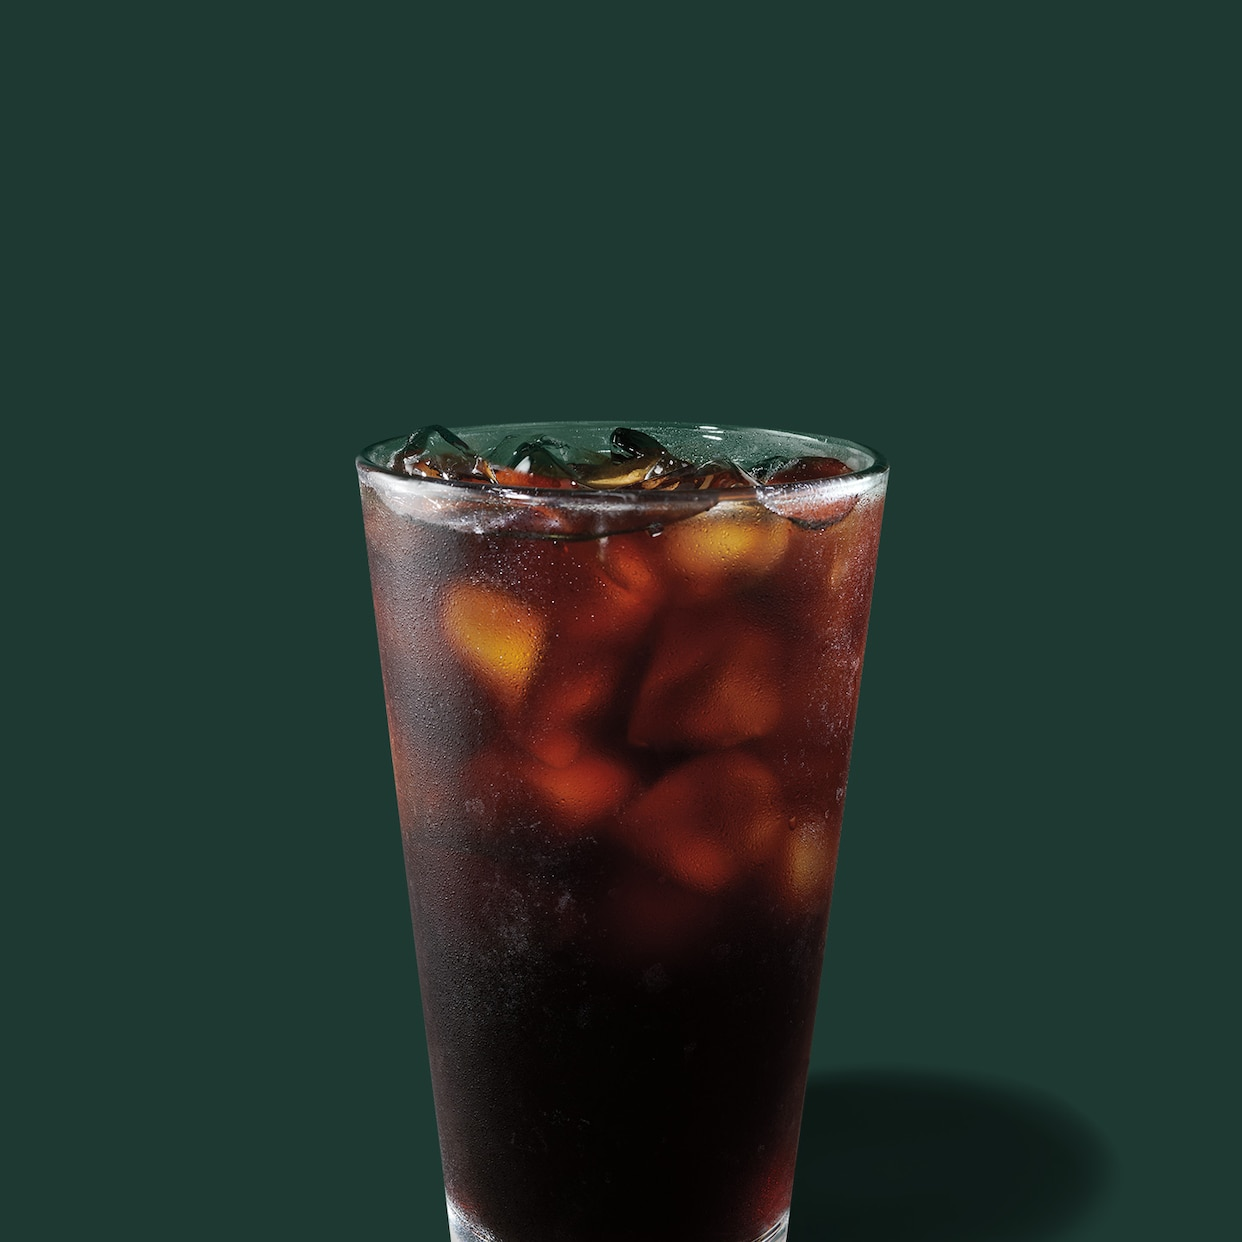 Cold Brew Iced Coffee Starbucks Nutrition - Image of Coffee and Tea